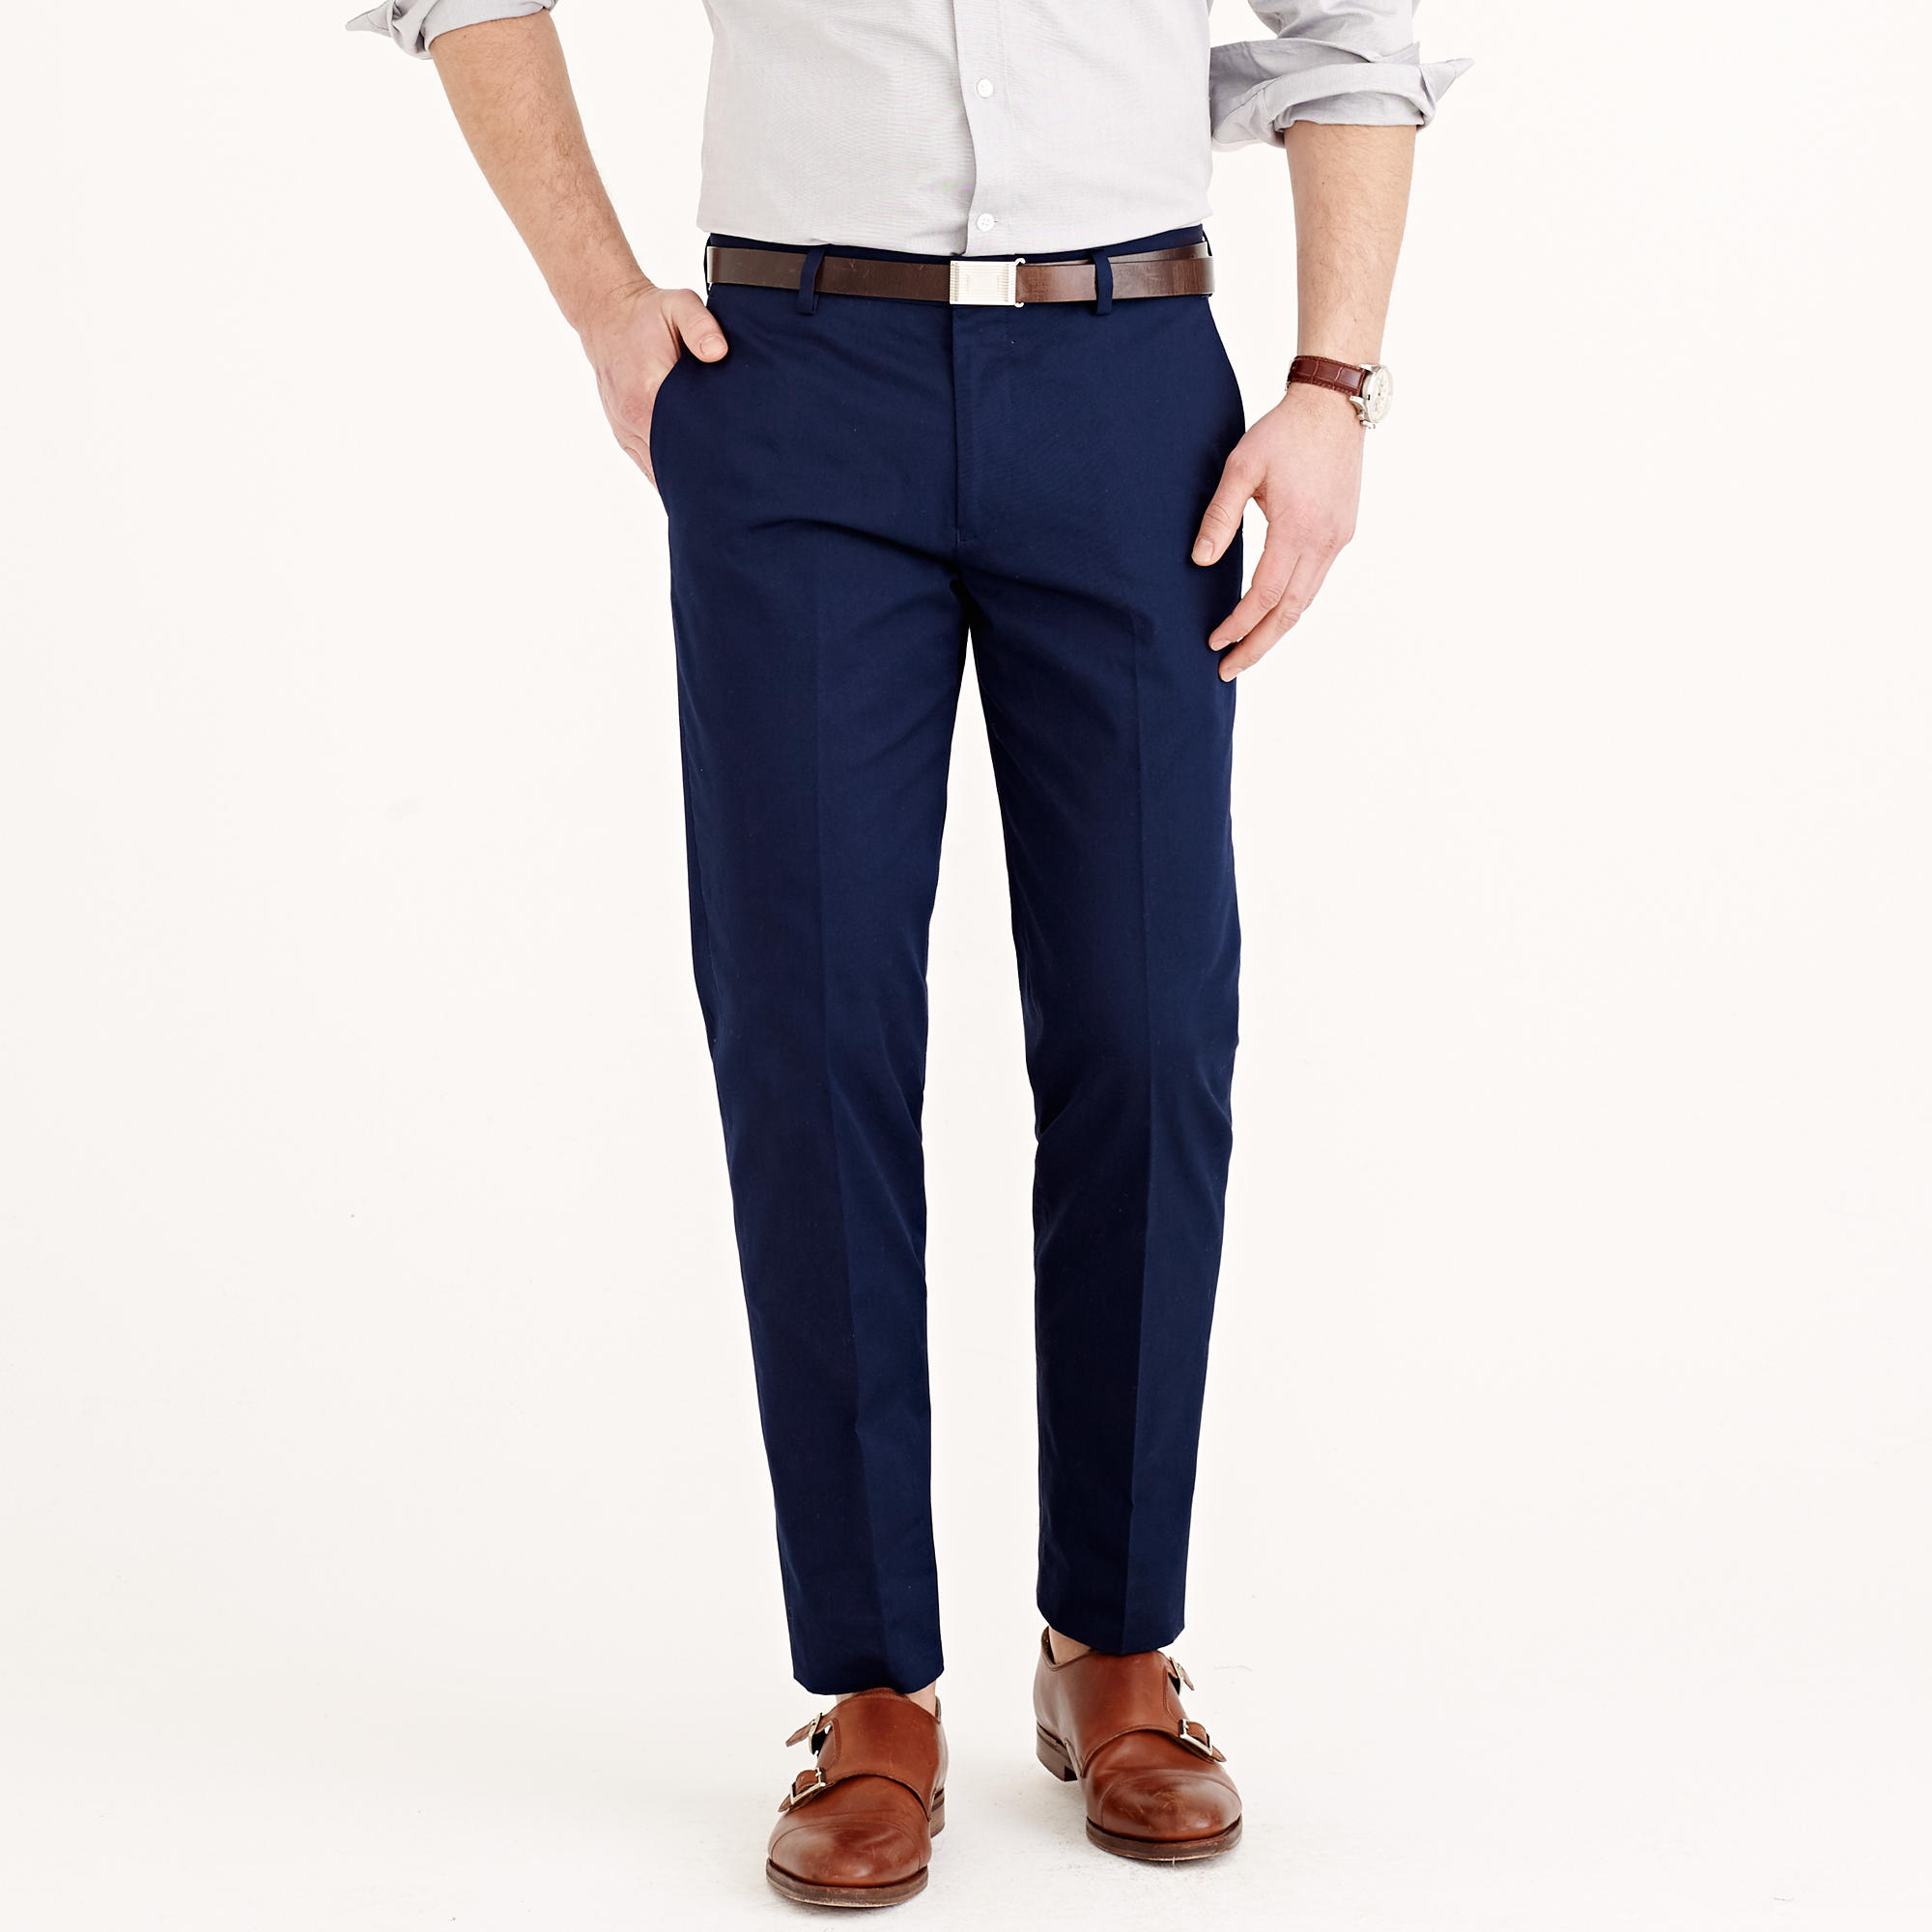 Men s clothing pants j crew pants j crew blue ludlow chino for J crew mens outfits